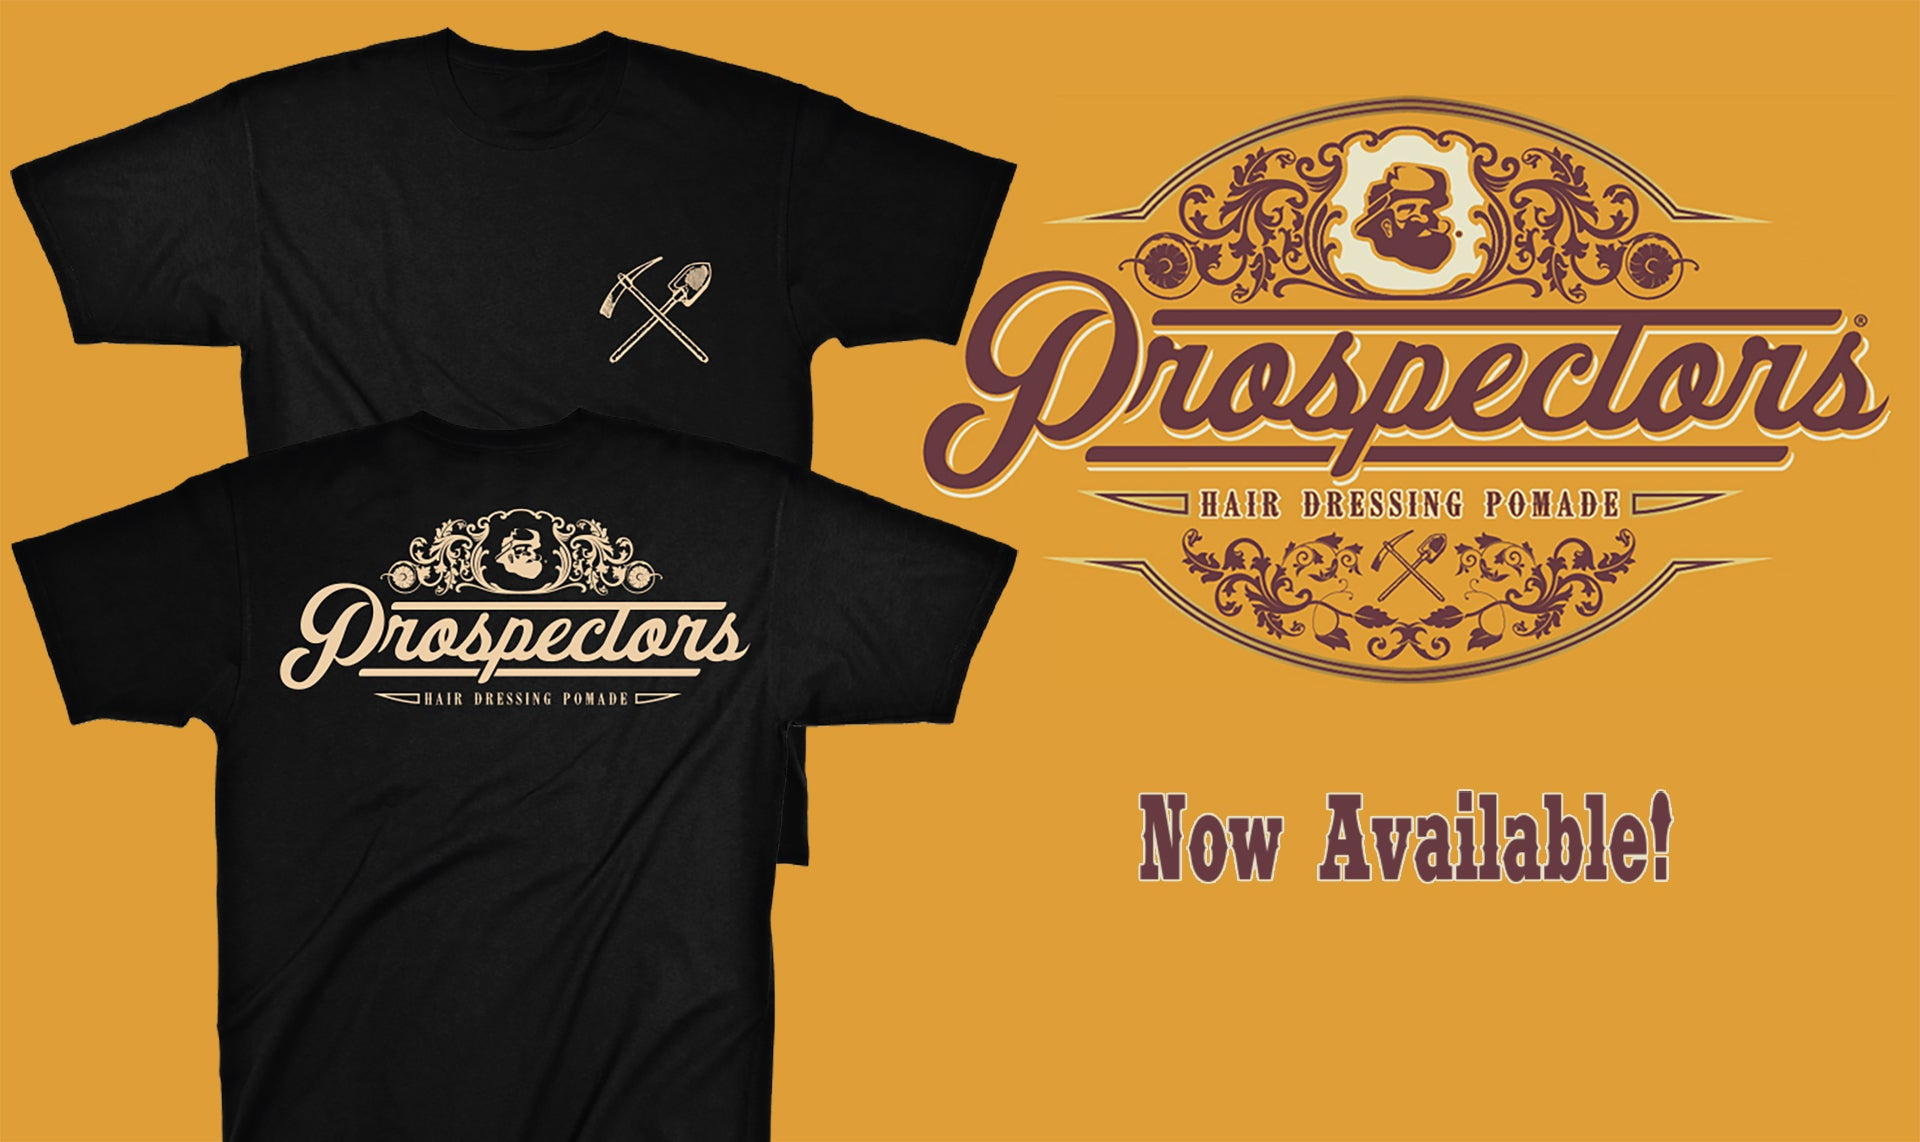 Prospectors Pomade Tee Now Available